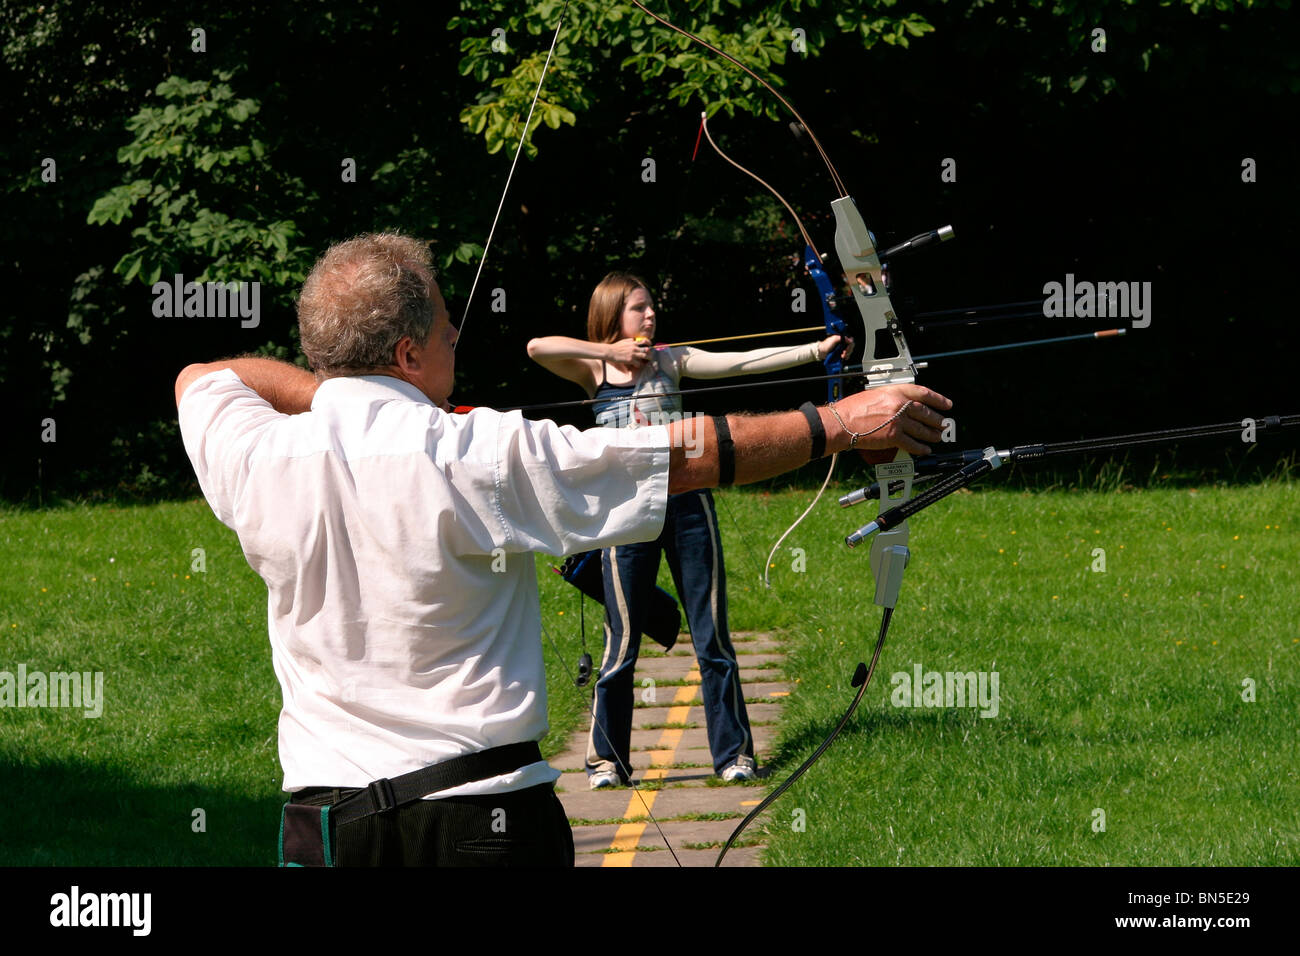 UK, England, Cheshire, Stockport, Cheadle, Bruntwood Park, male and female archers drawing bows in archery group - Stock Image